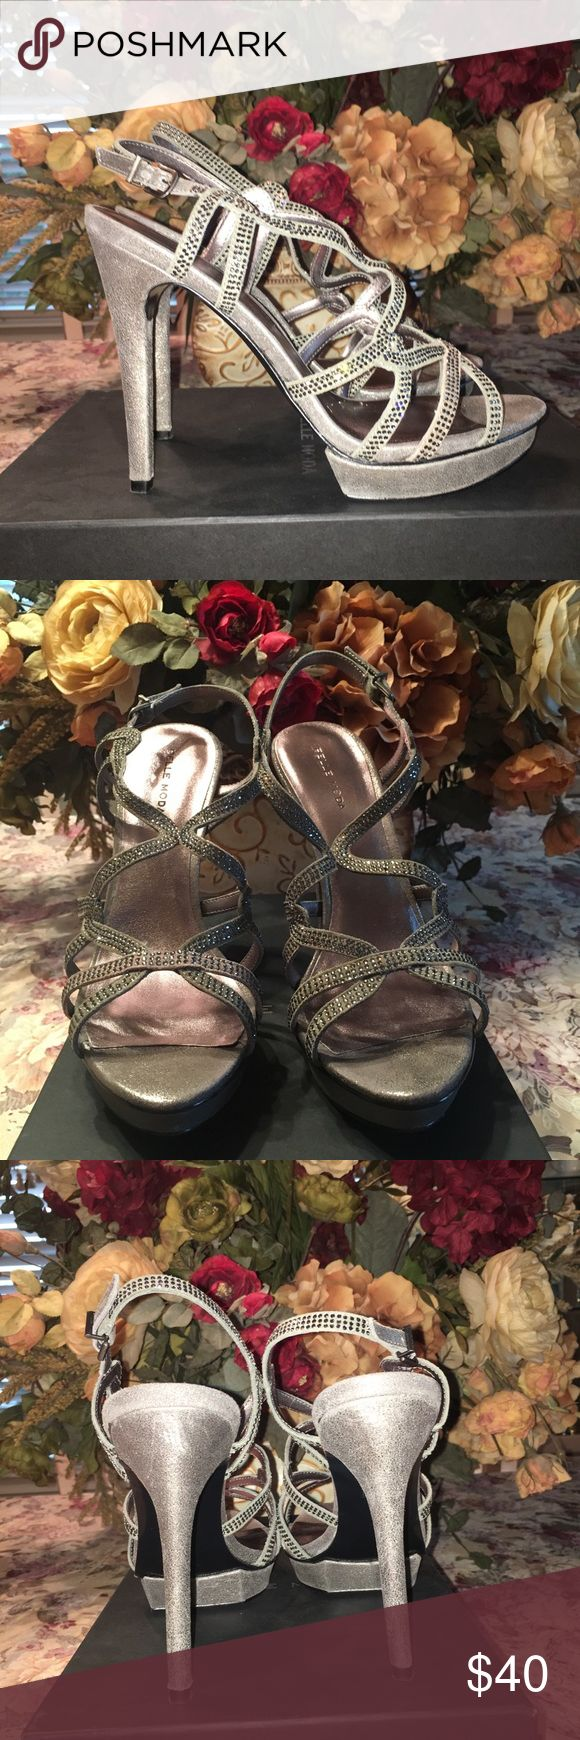 Platform Special Occasion Sandal Sparkly dress Platform Pumps. Pewter color is the new neutral. Perfect for wedding season. Comes with box. Worn once Pelle Moda Shoes Heels